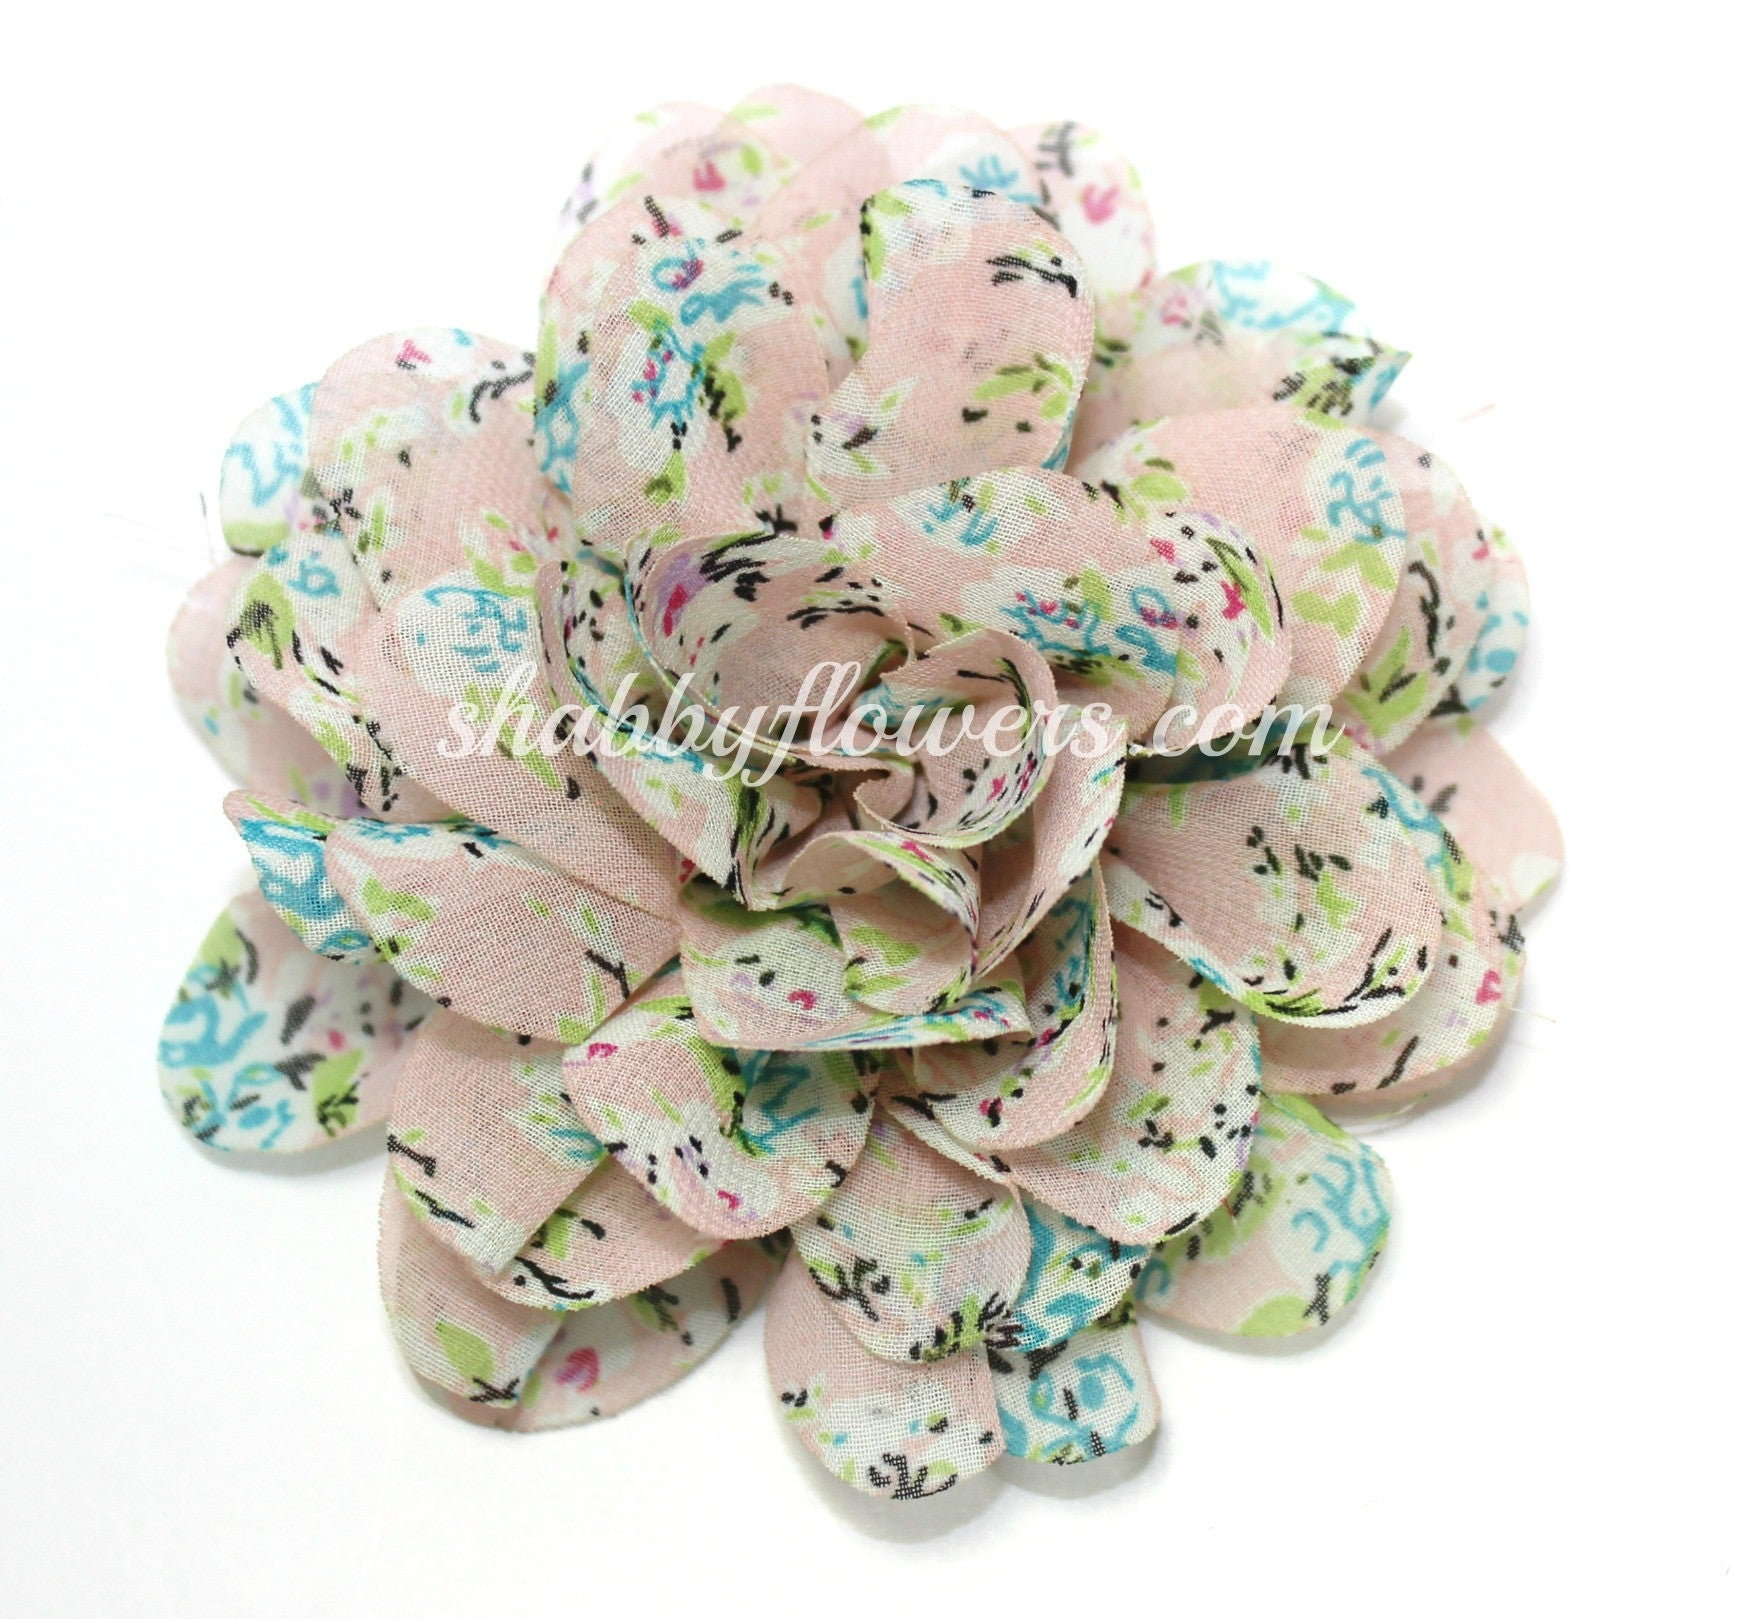 Large Chiffon Flower - Pale Pink Floral - shabbyflowers.com